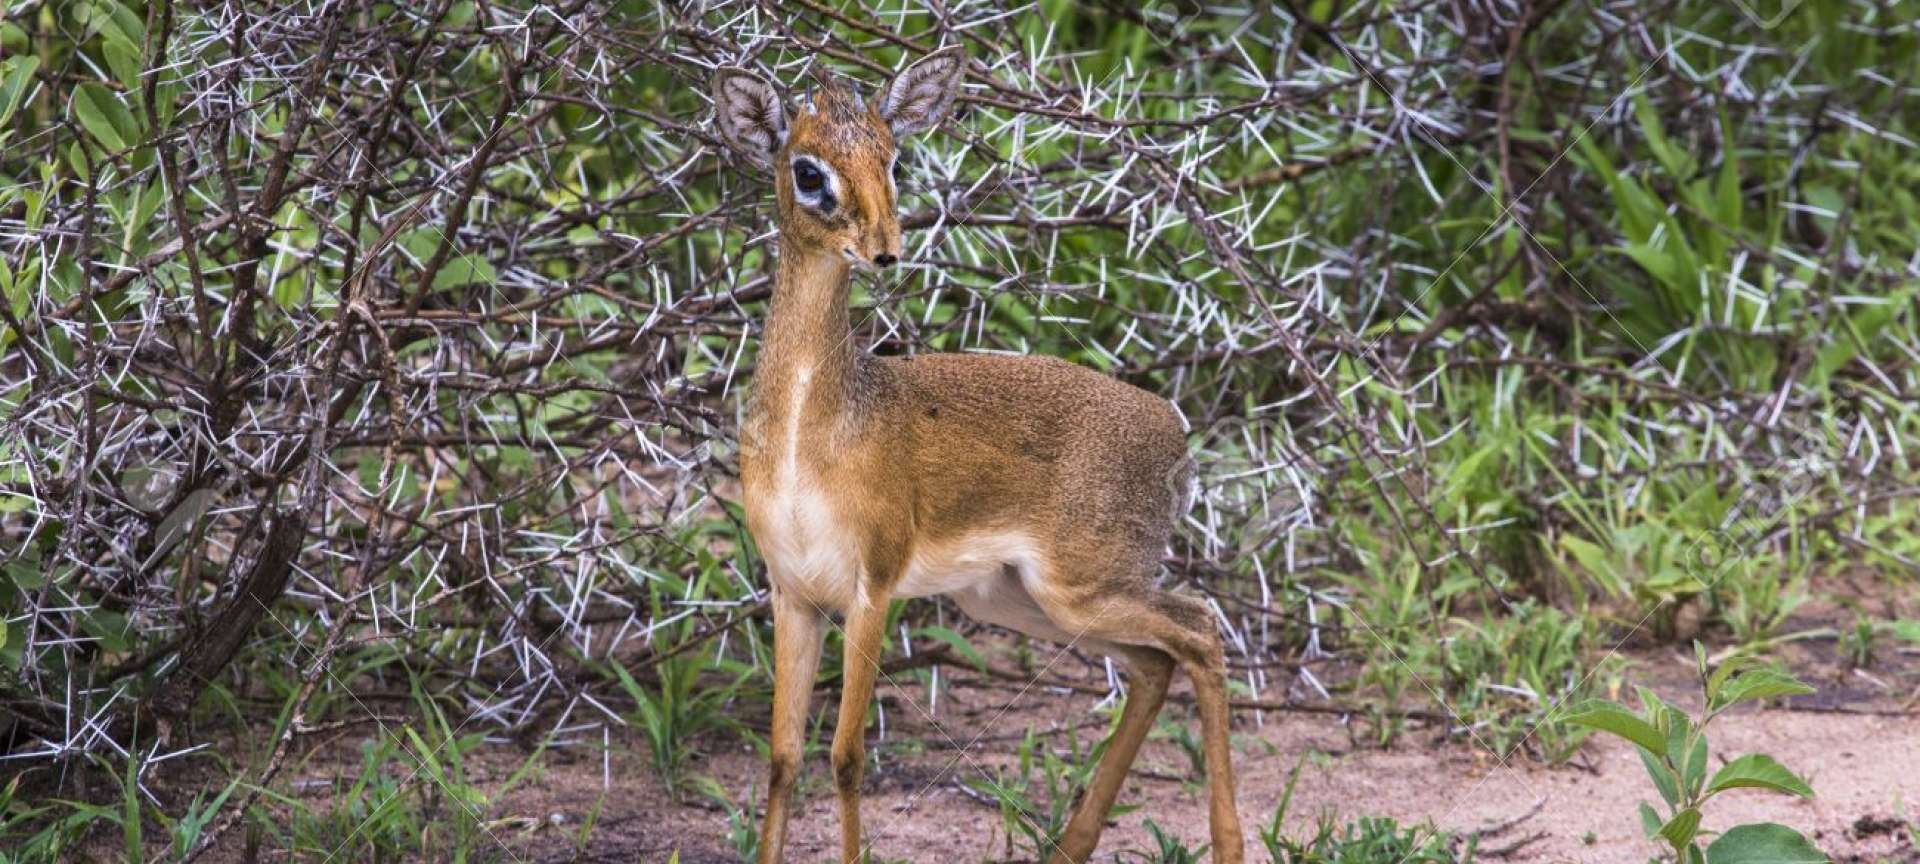 The dik-dik is a small antelope found in Tanzania